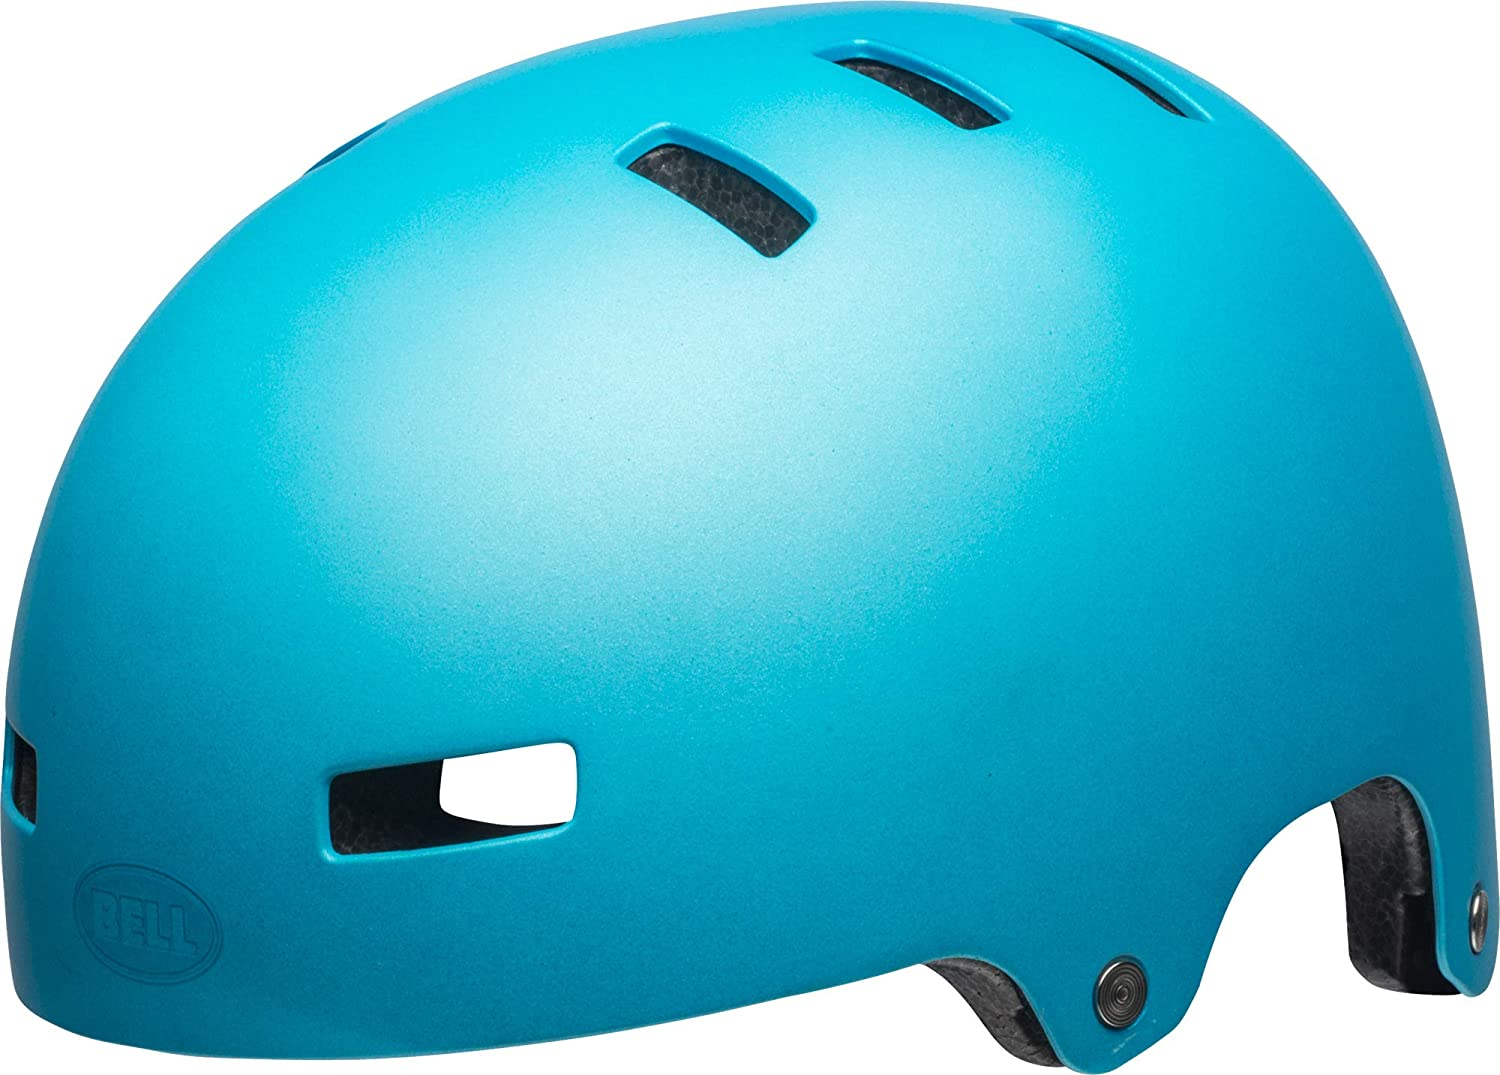 BELL Children's Span Youth Cycling Helmet